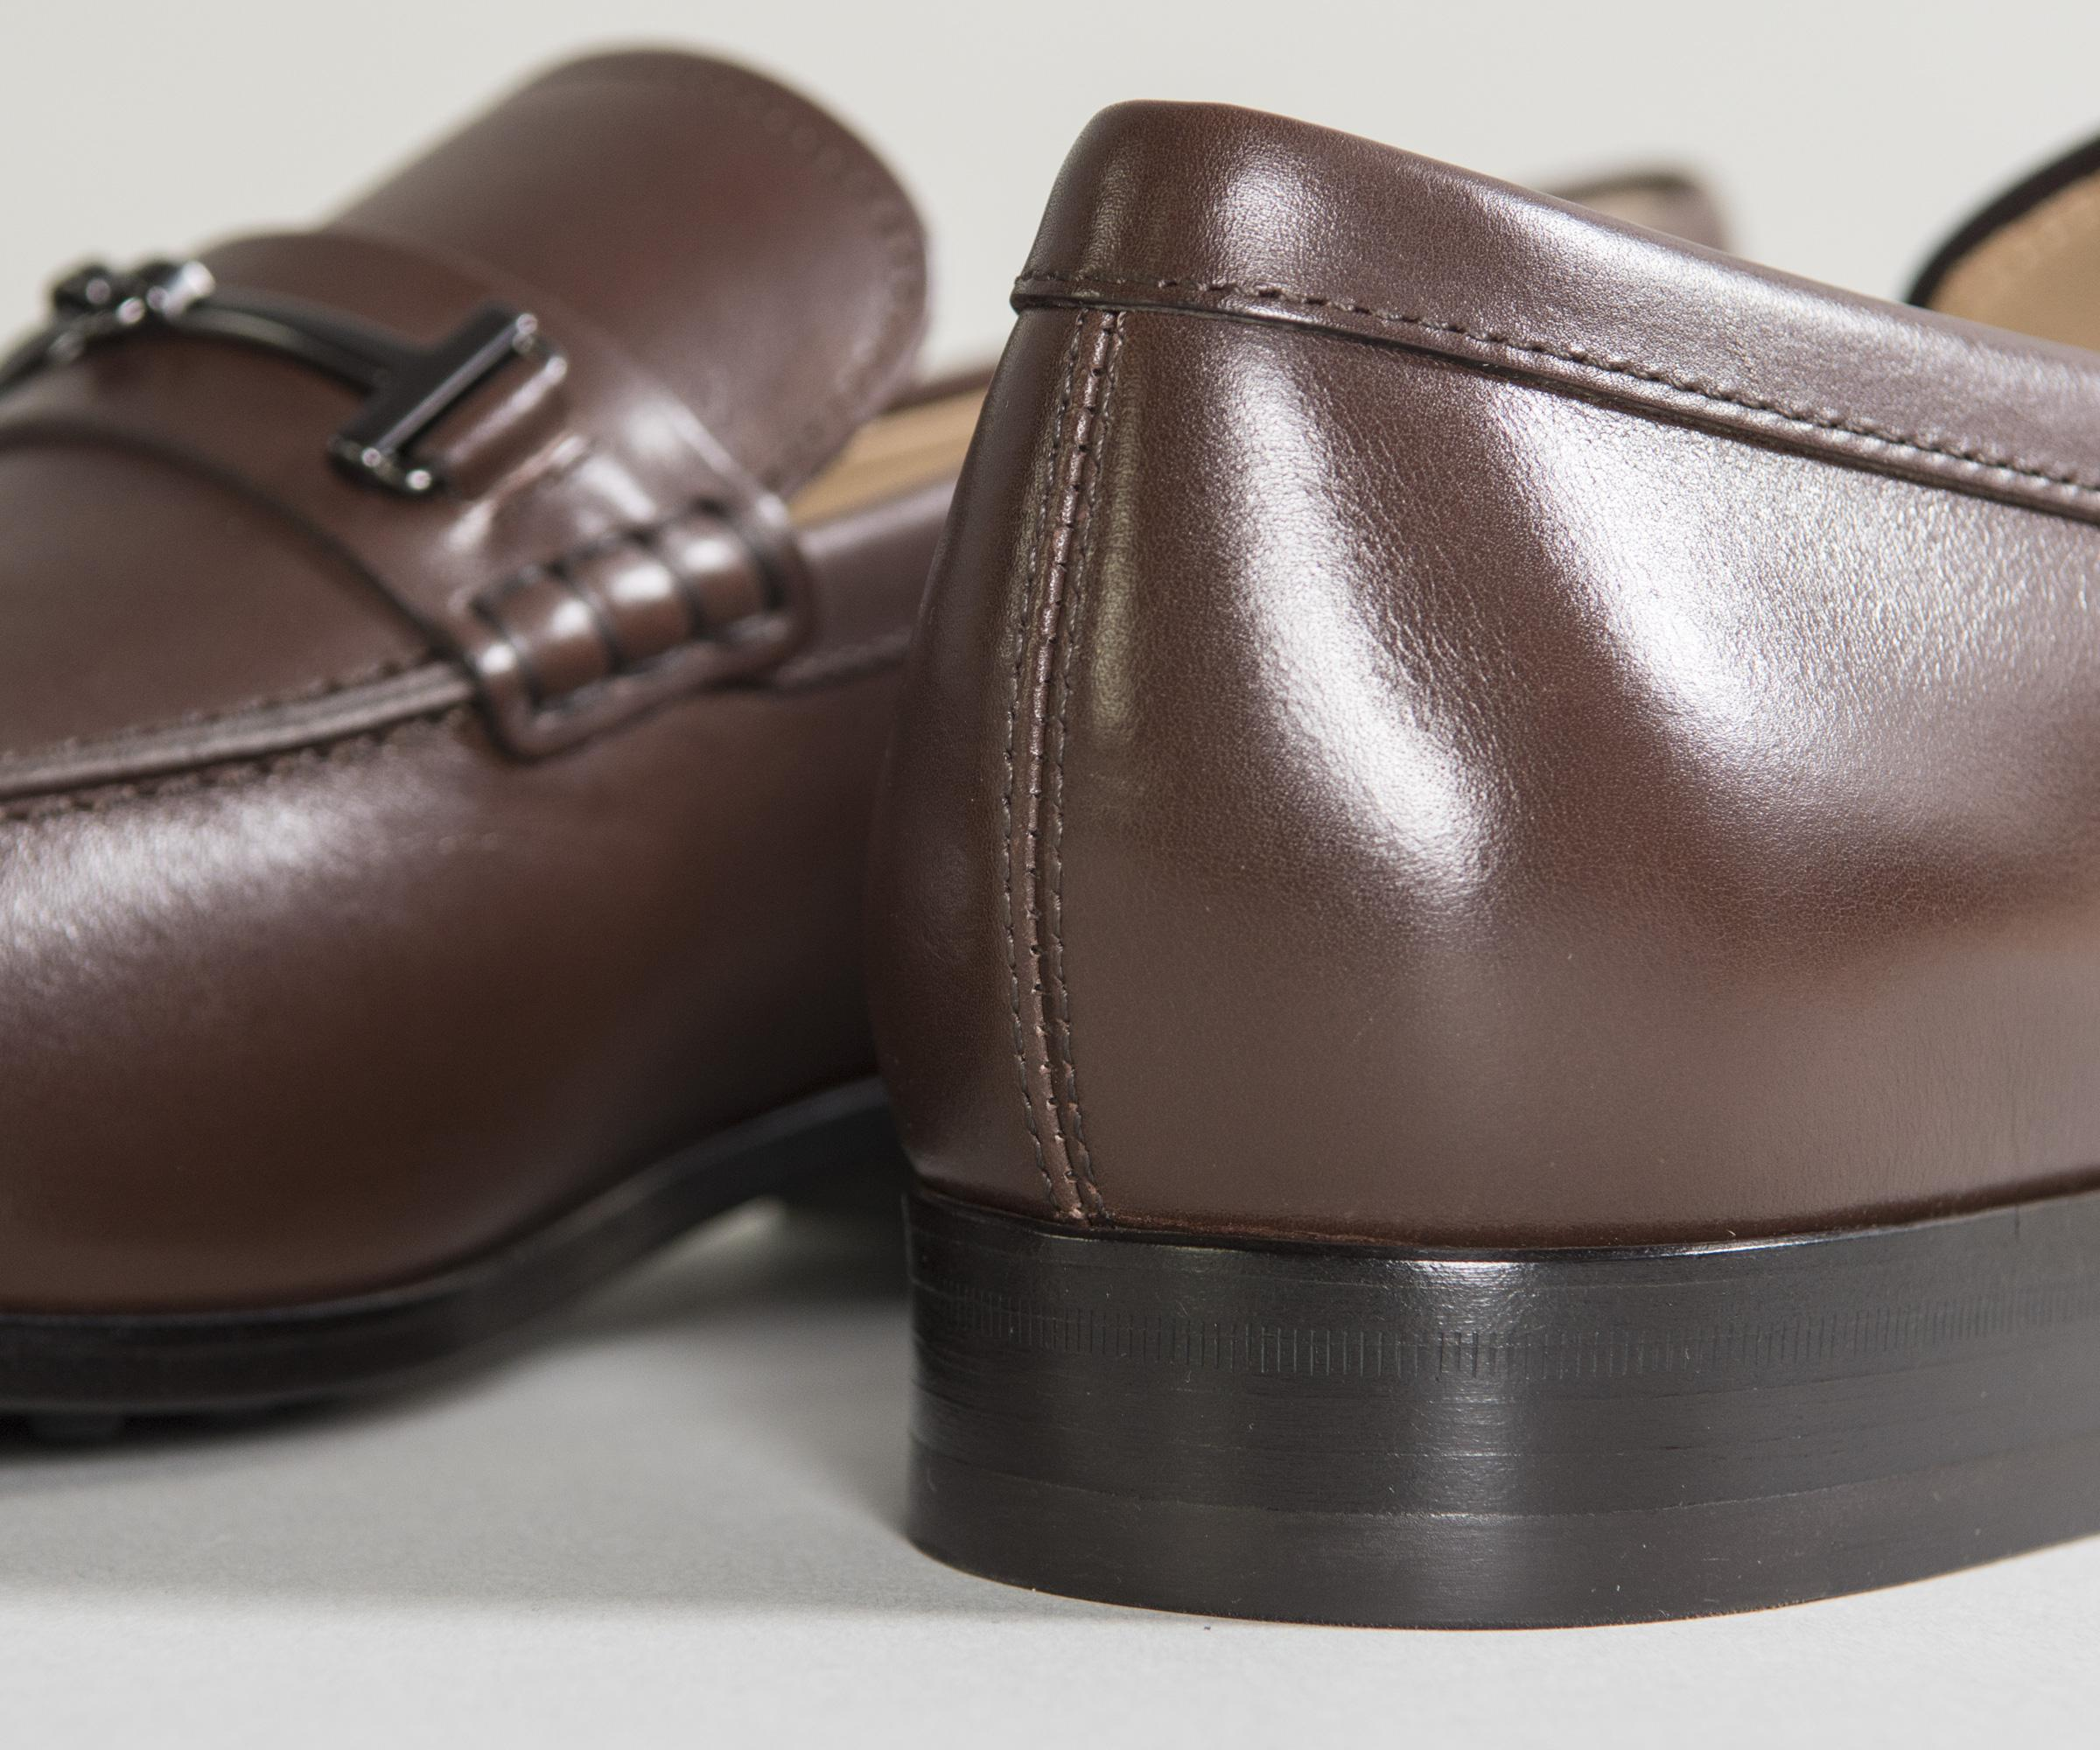 Sale Pay With Paypal Explore Cheap Online Classic Leather Loafers With T-Bar Detail Brown Tod's Visit Sale Online uw38swXZIy